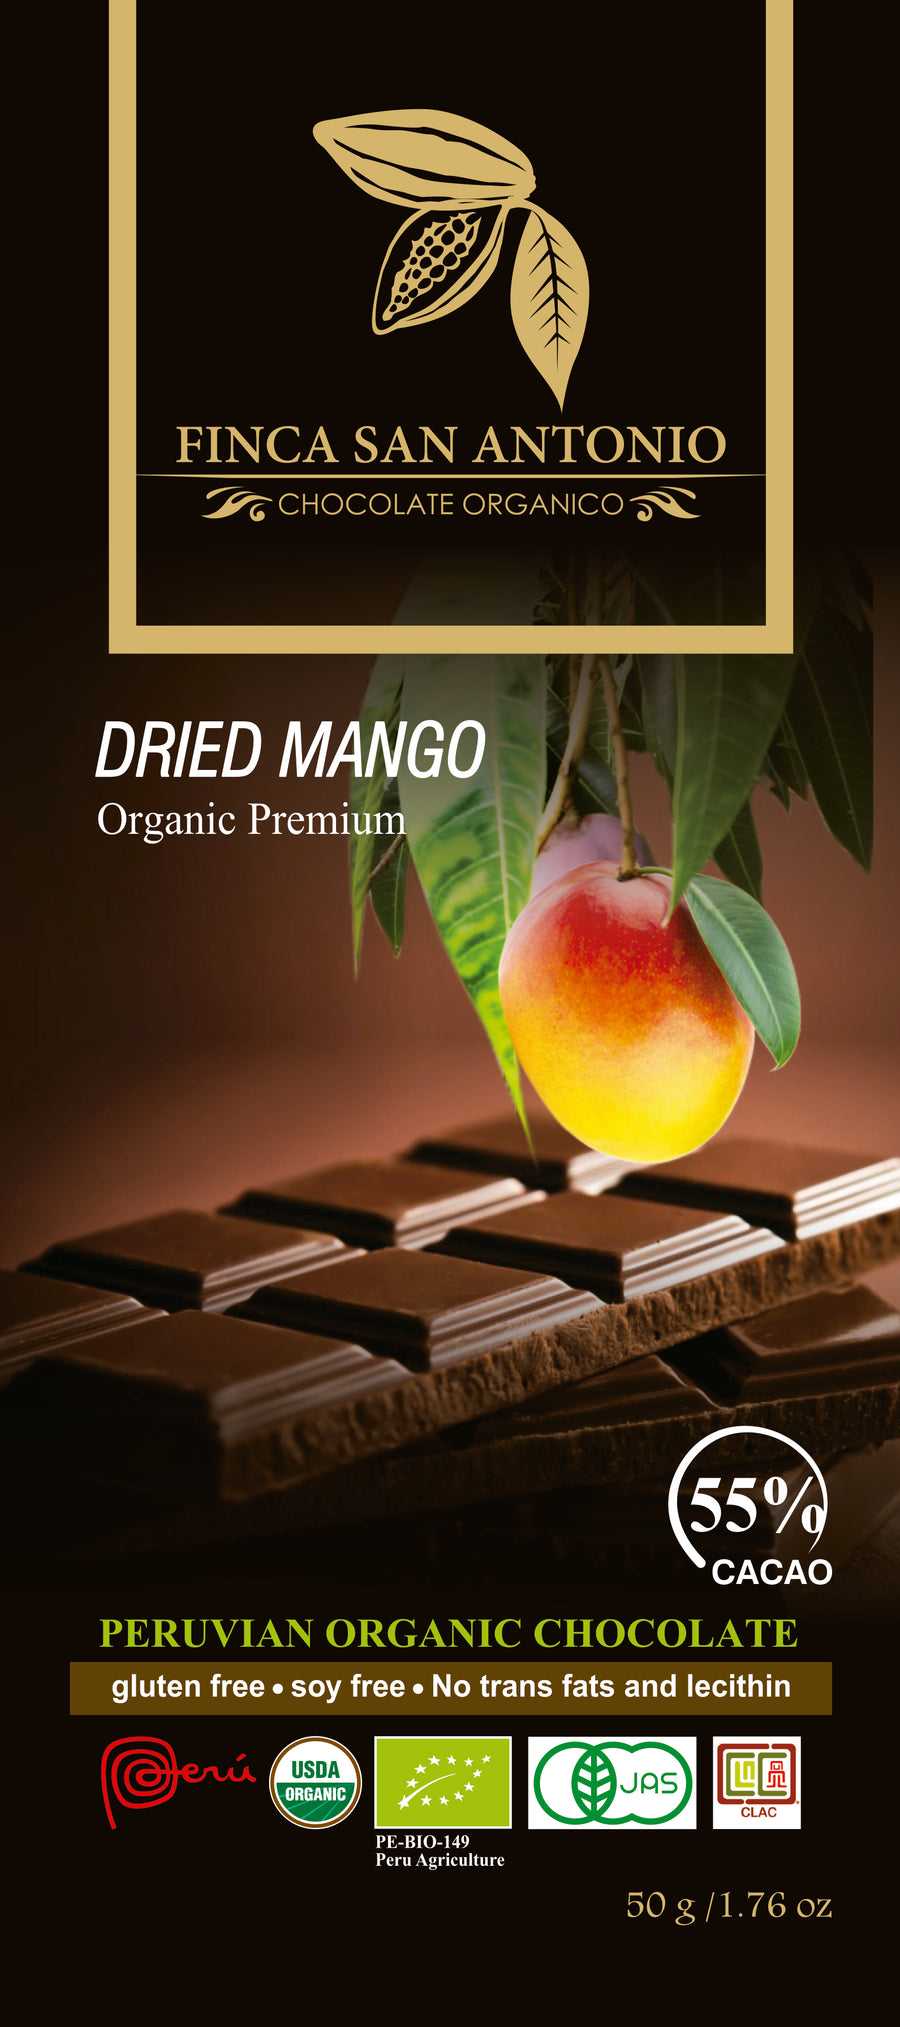 Finca San Antonio - Dried Mango 55%